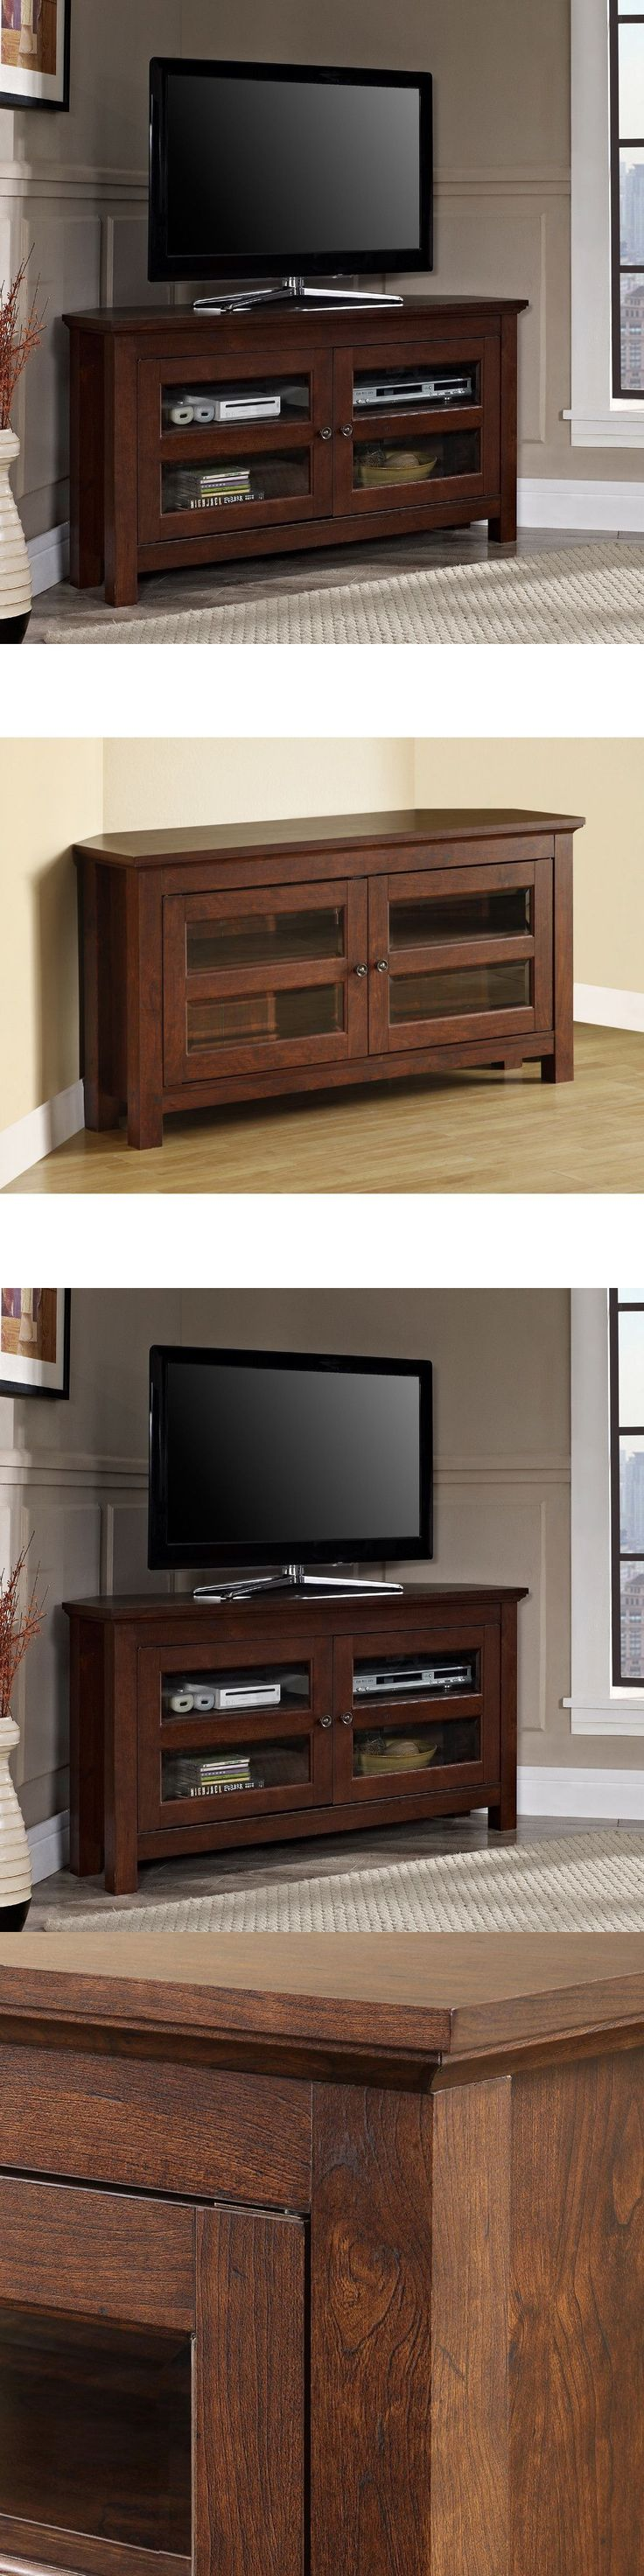 Living Room Furniture Tv Cabinet best 10+ tv stand corner ideas on pinterest | corner tv, corner tv